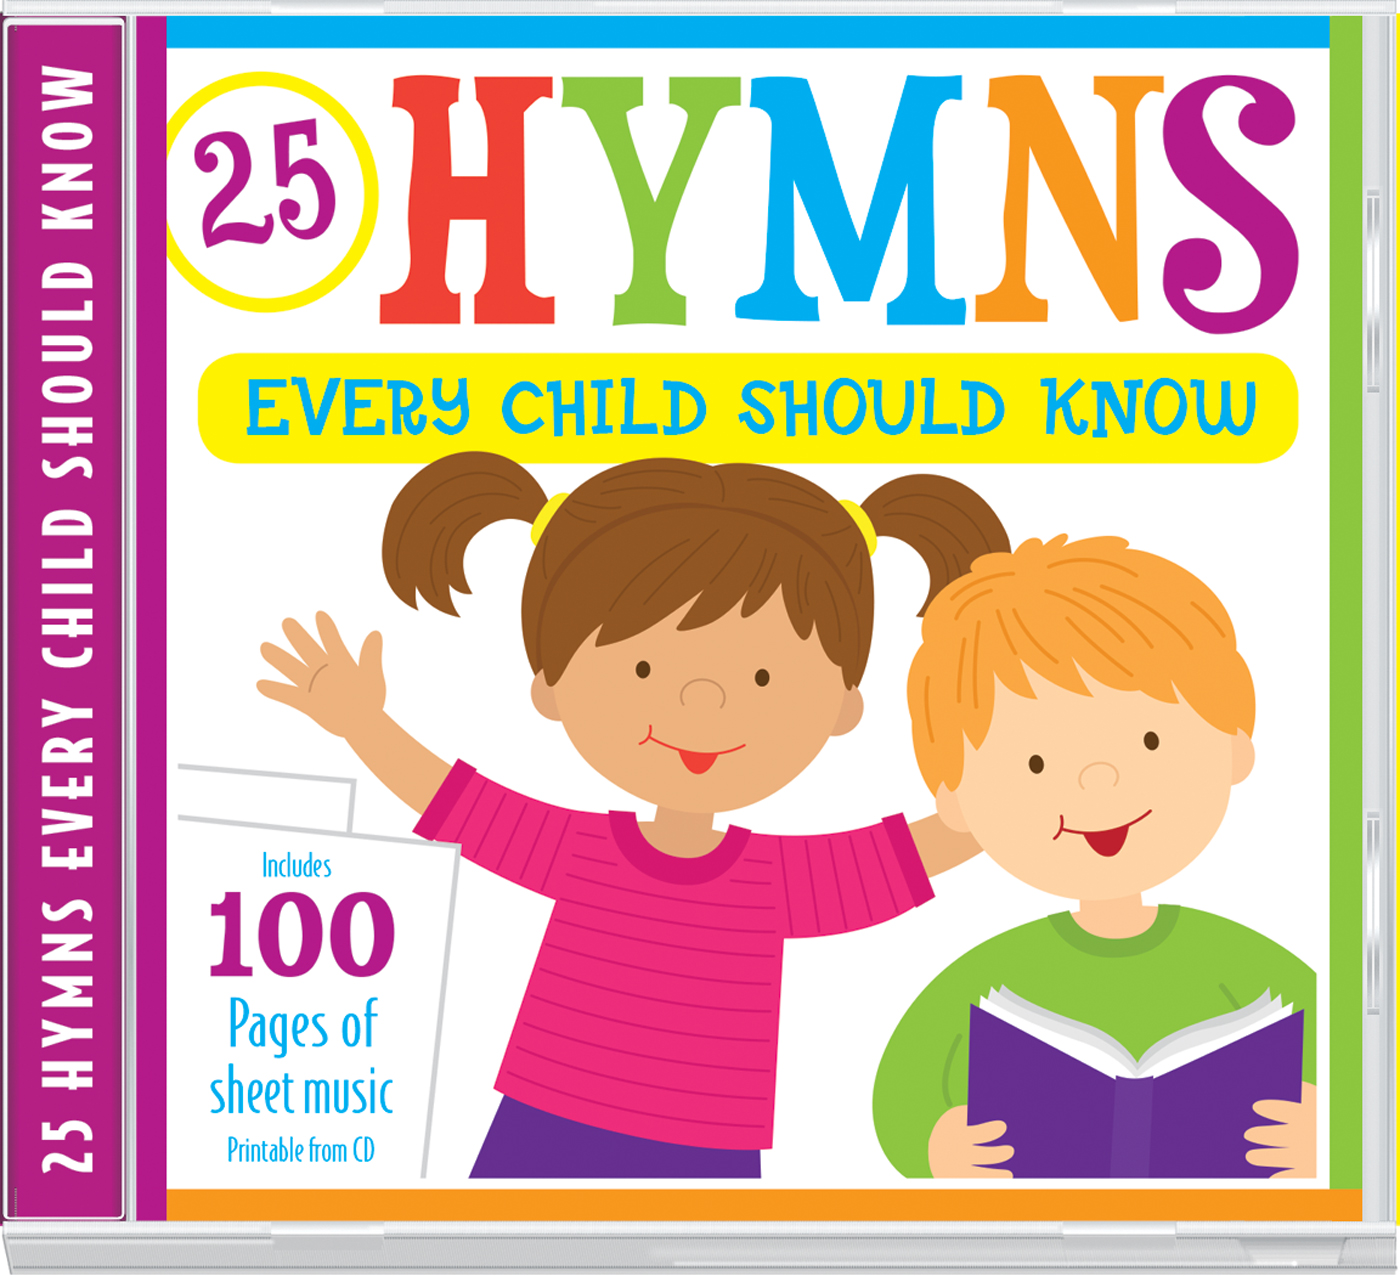 25 Hymns Every Child Should Know : 25 Hymns Sung by Kids with More Than 100 Pages of Printable Sheet Music